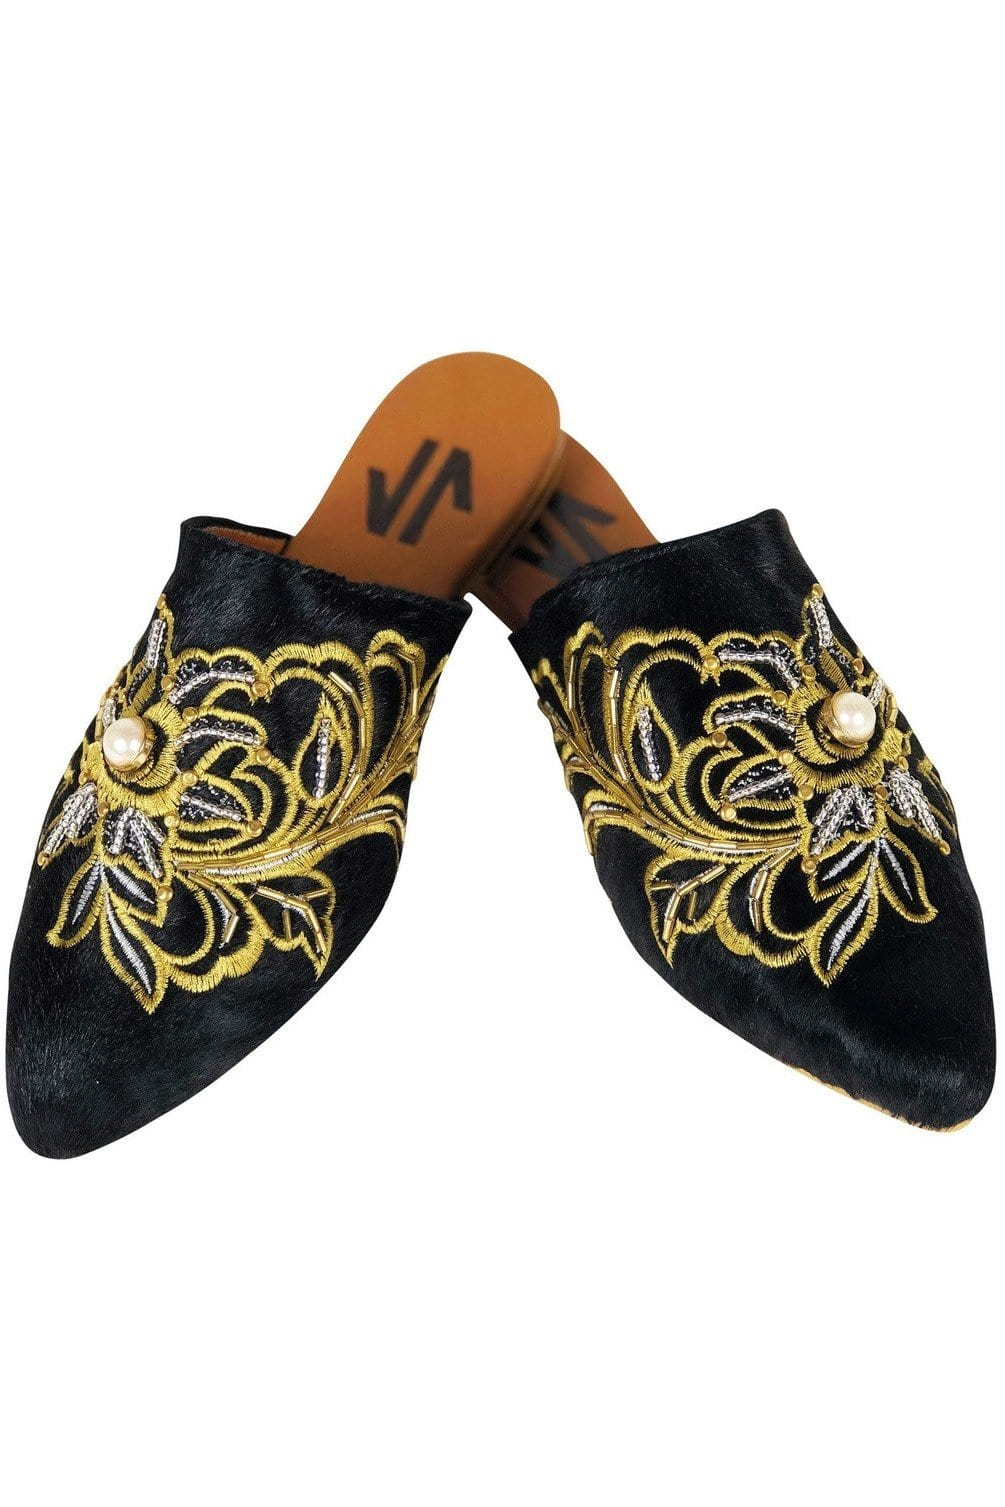 Columbian Leather Embroidered Mules - Himelhoch's